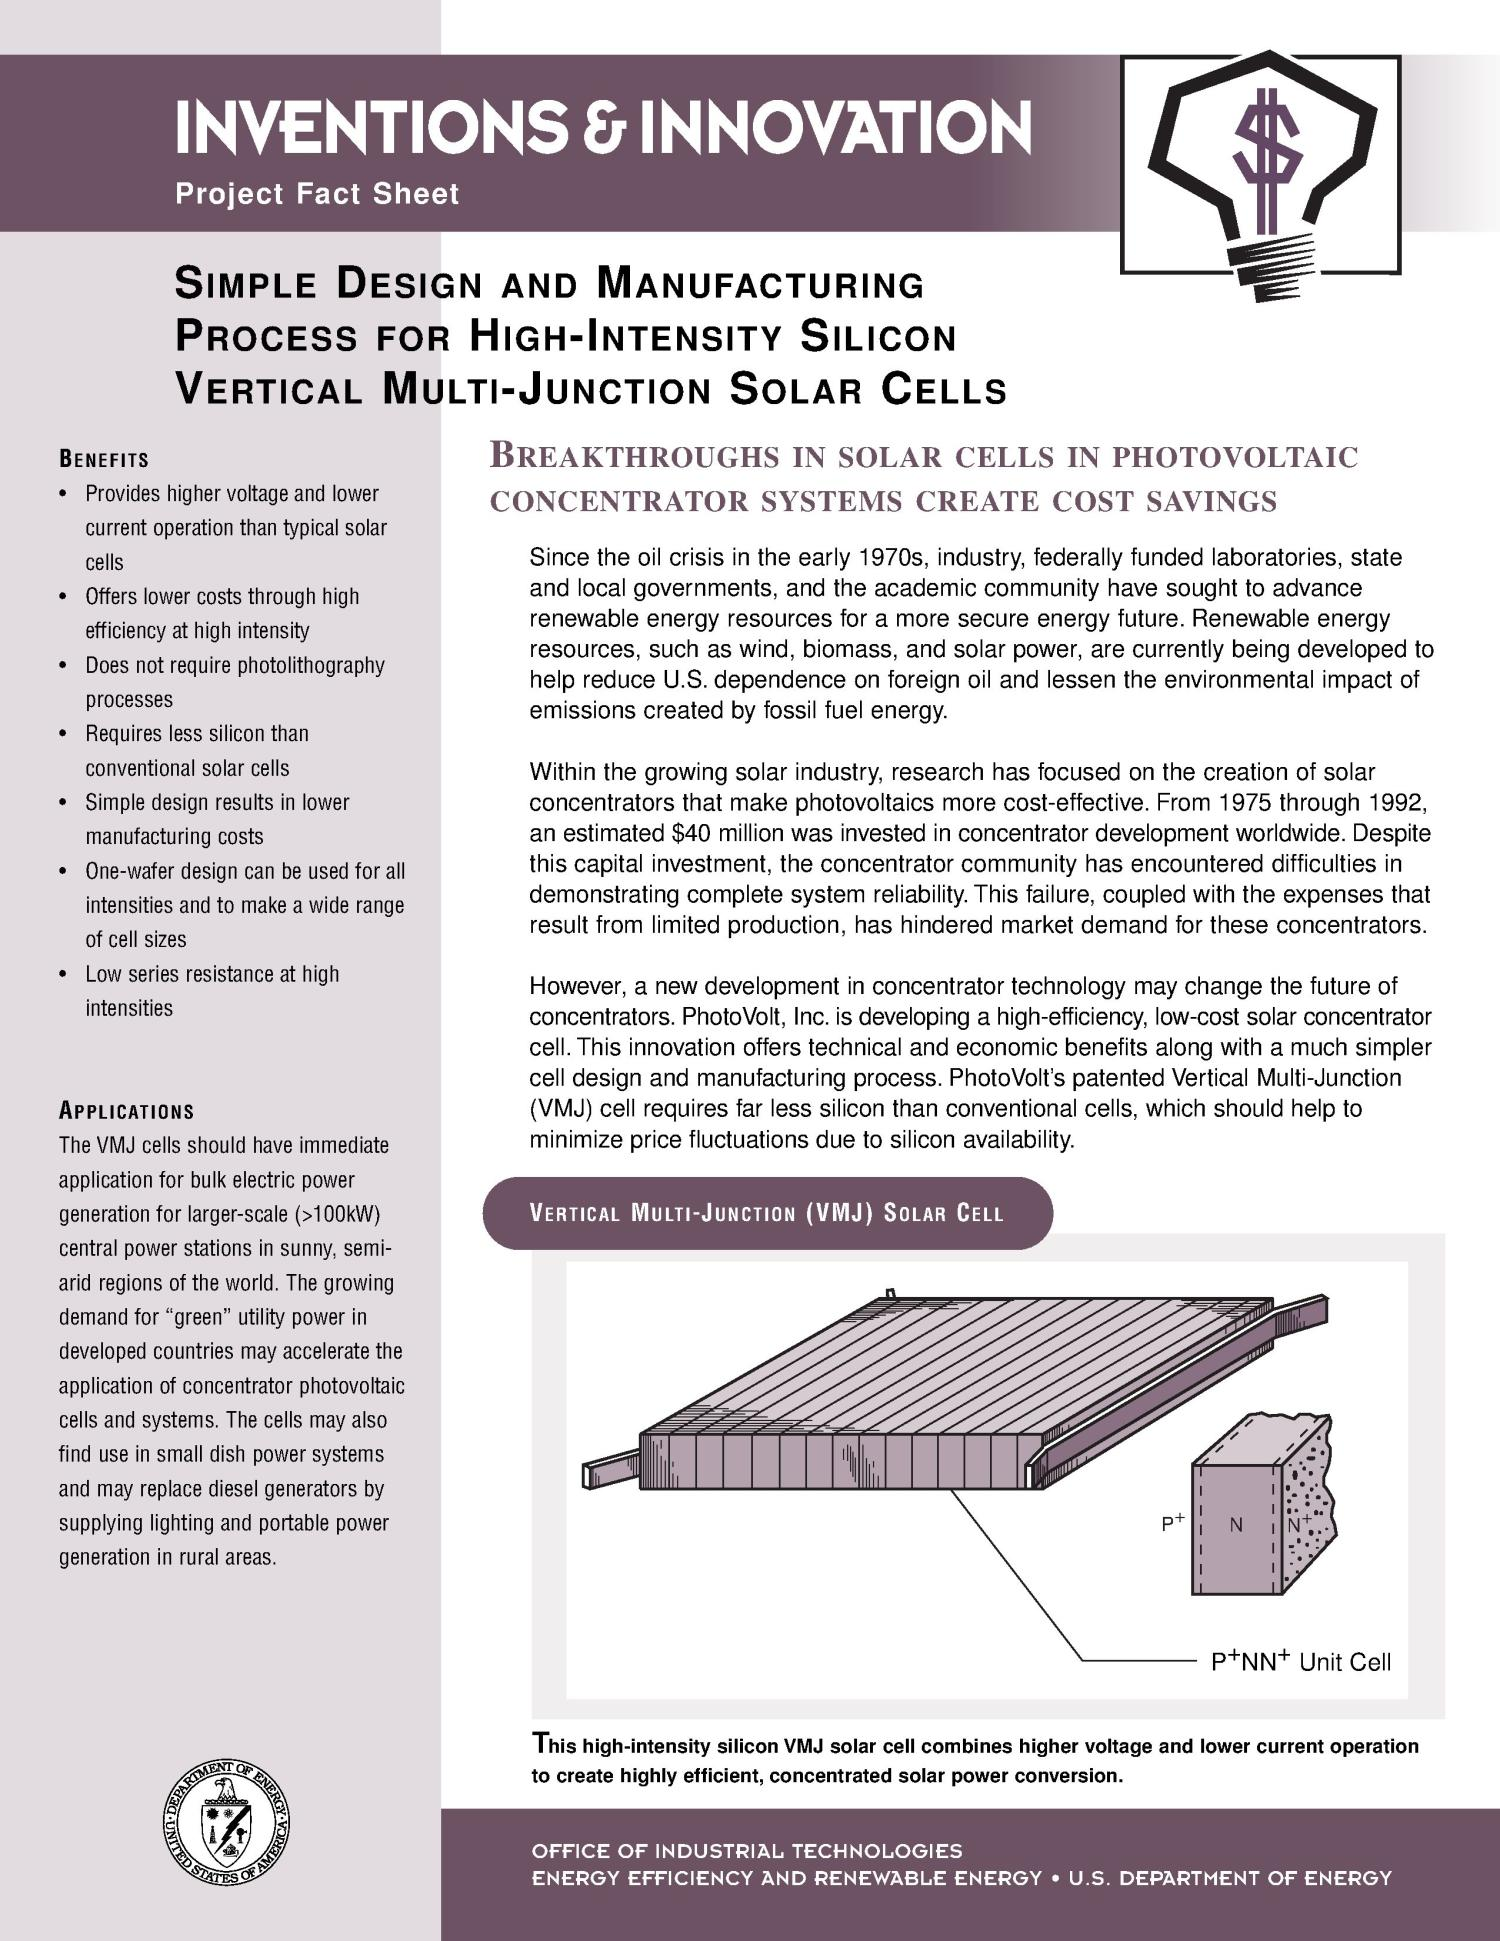 Simple design and manufacturing process for high intensity silicon simple design and manufacturing process for high intensity silicon vertical multi junction solar cells inventions and innovation project fact sheet page sciox Image collections